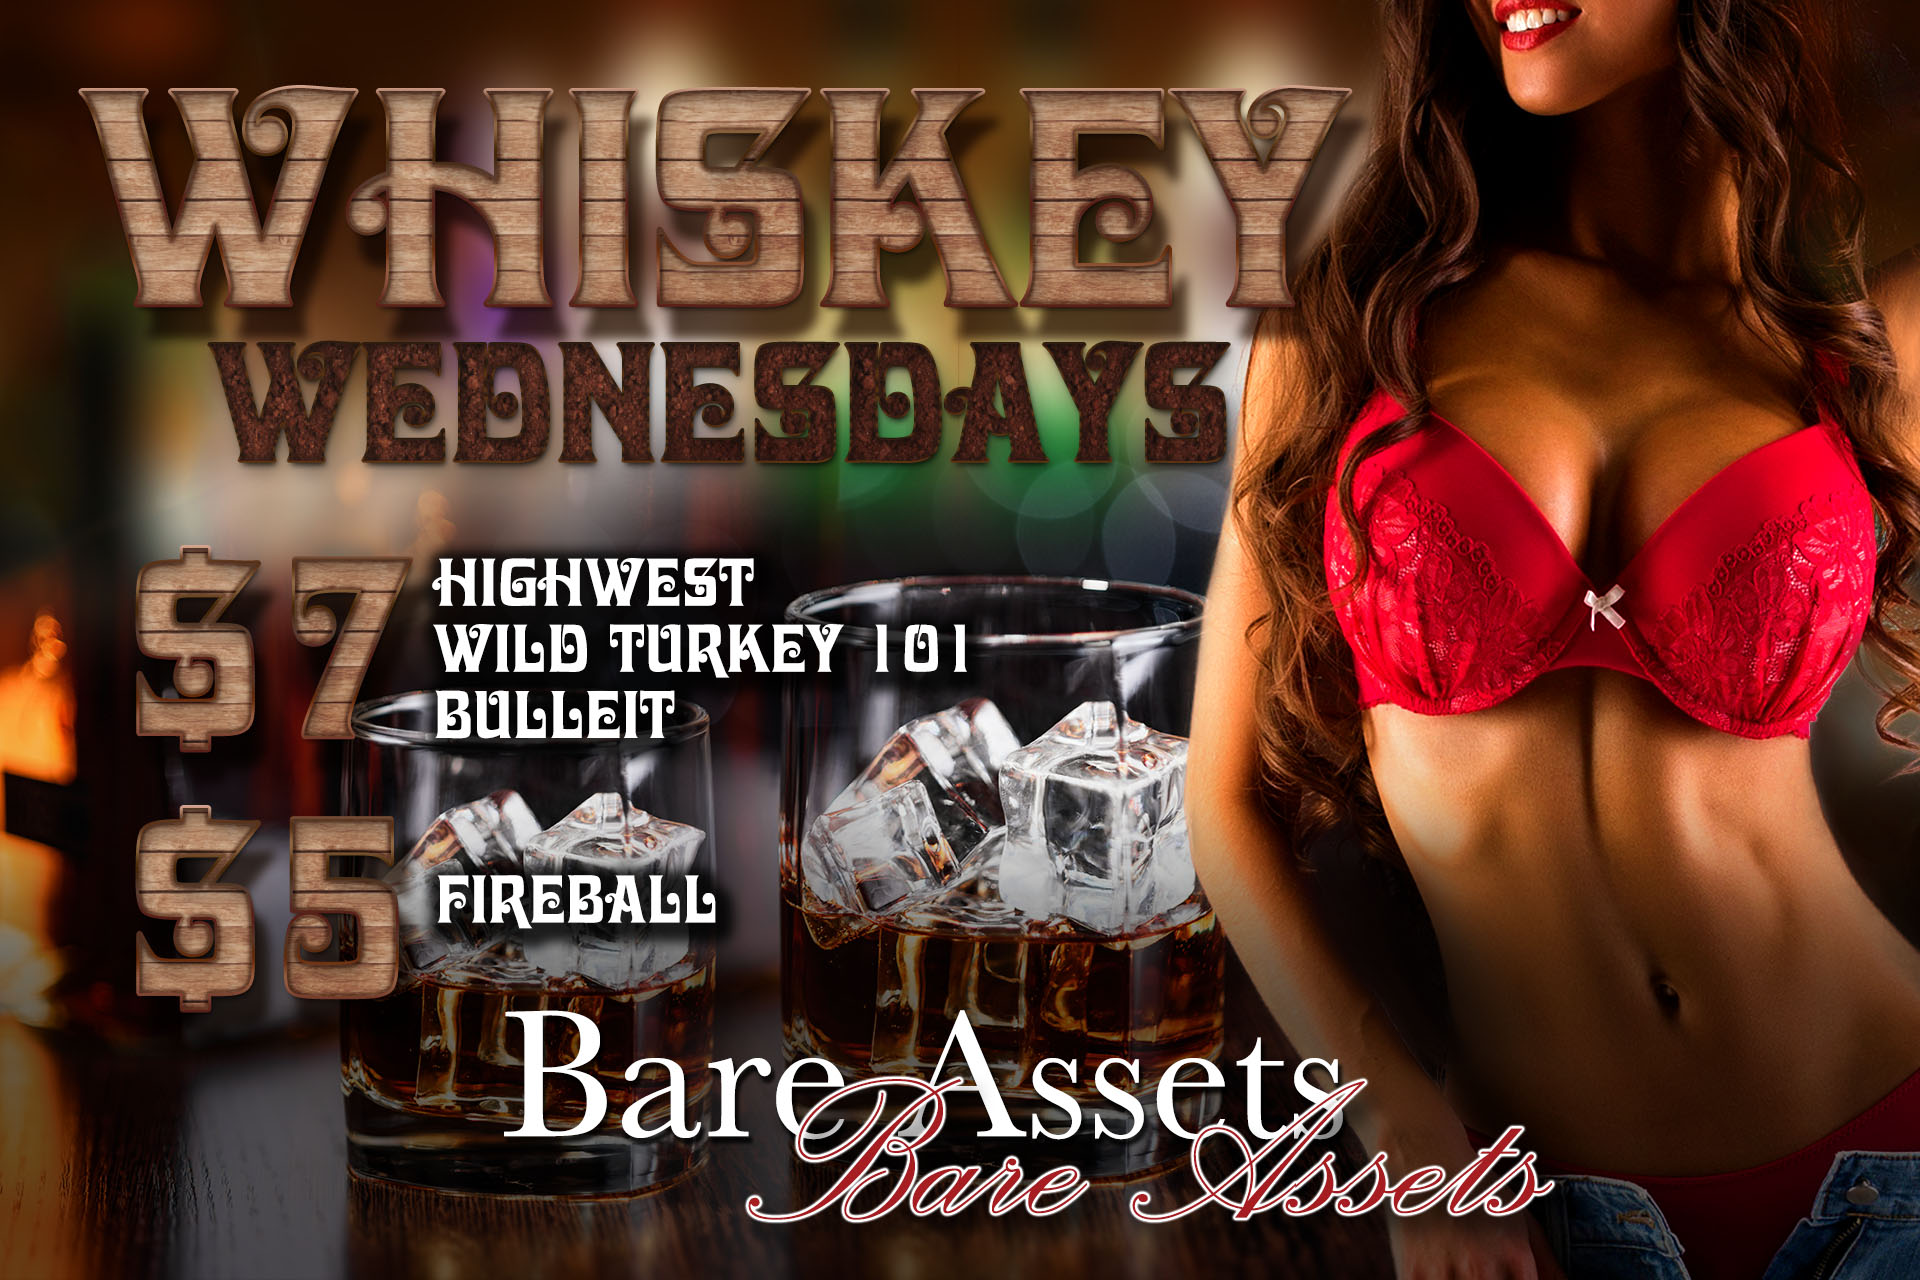 Bare Assets Bares All At The Attic [PHOTOS]